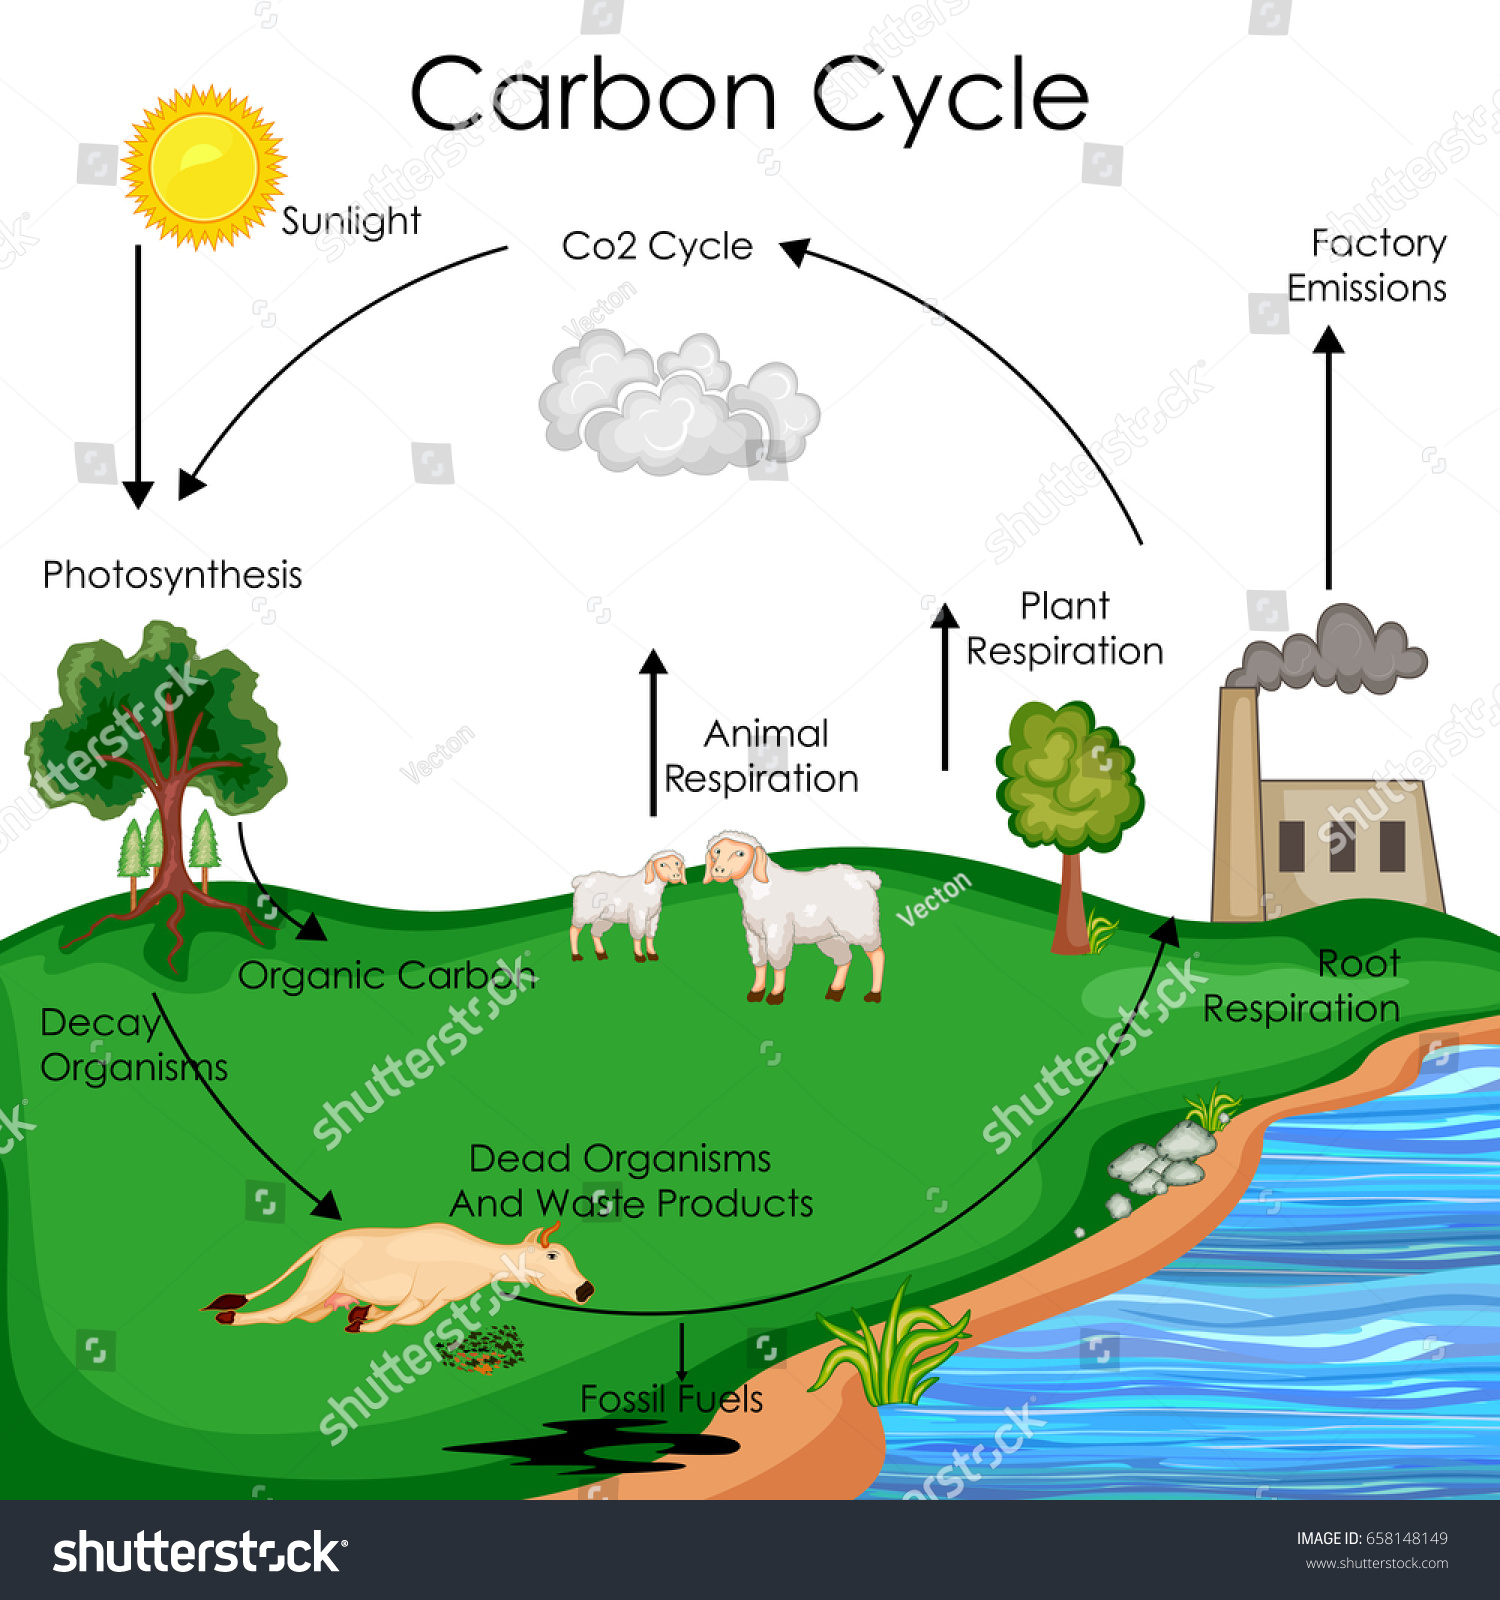 Carbon Cycle Diagram For Kids